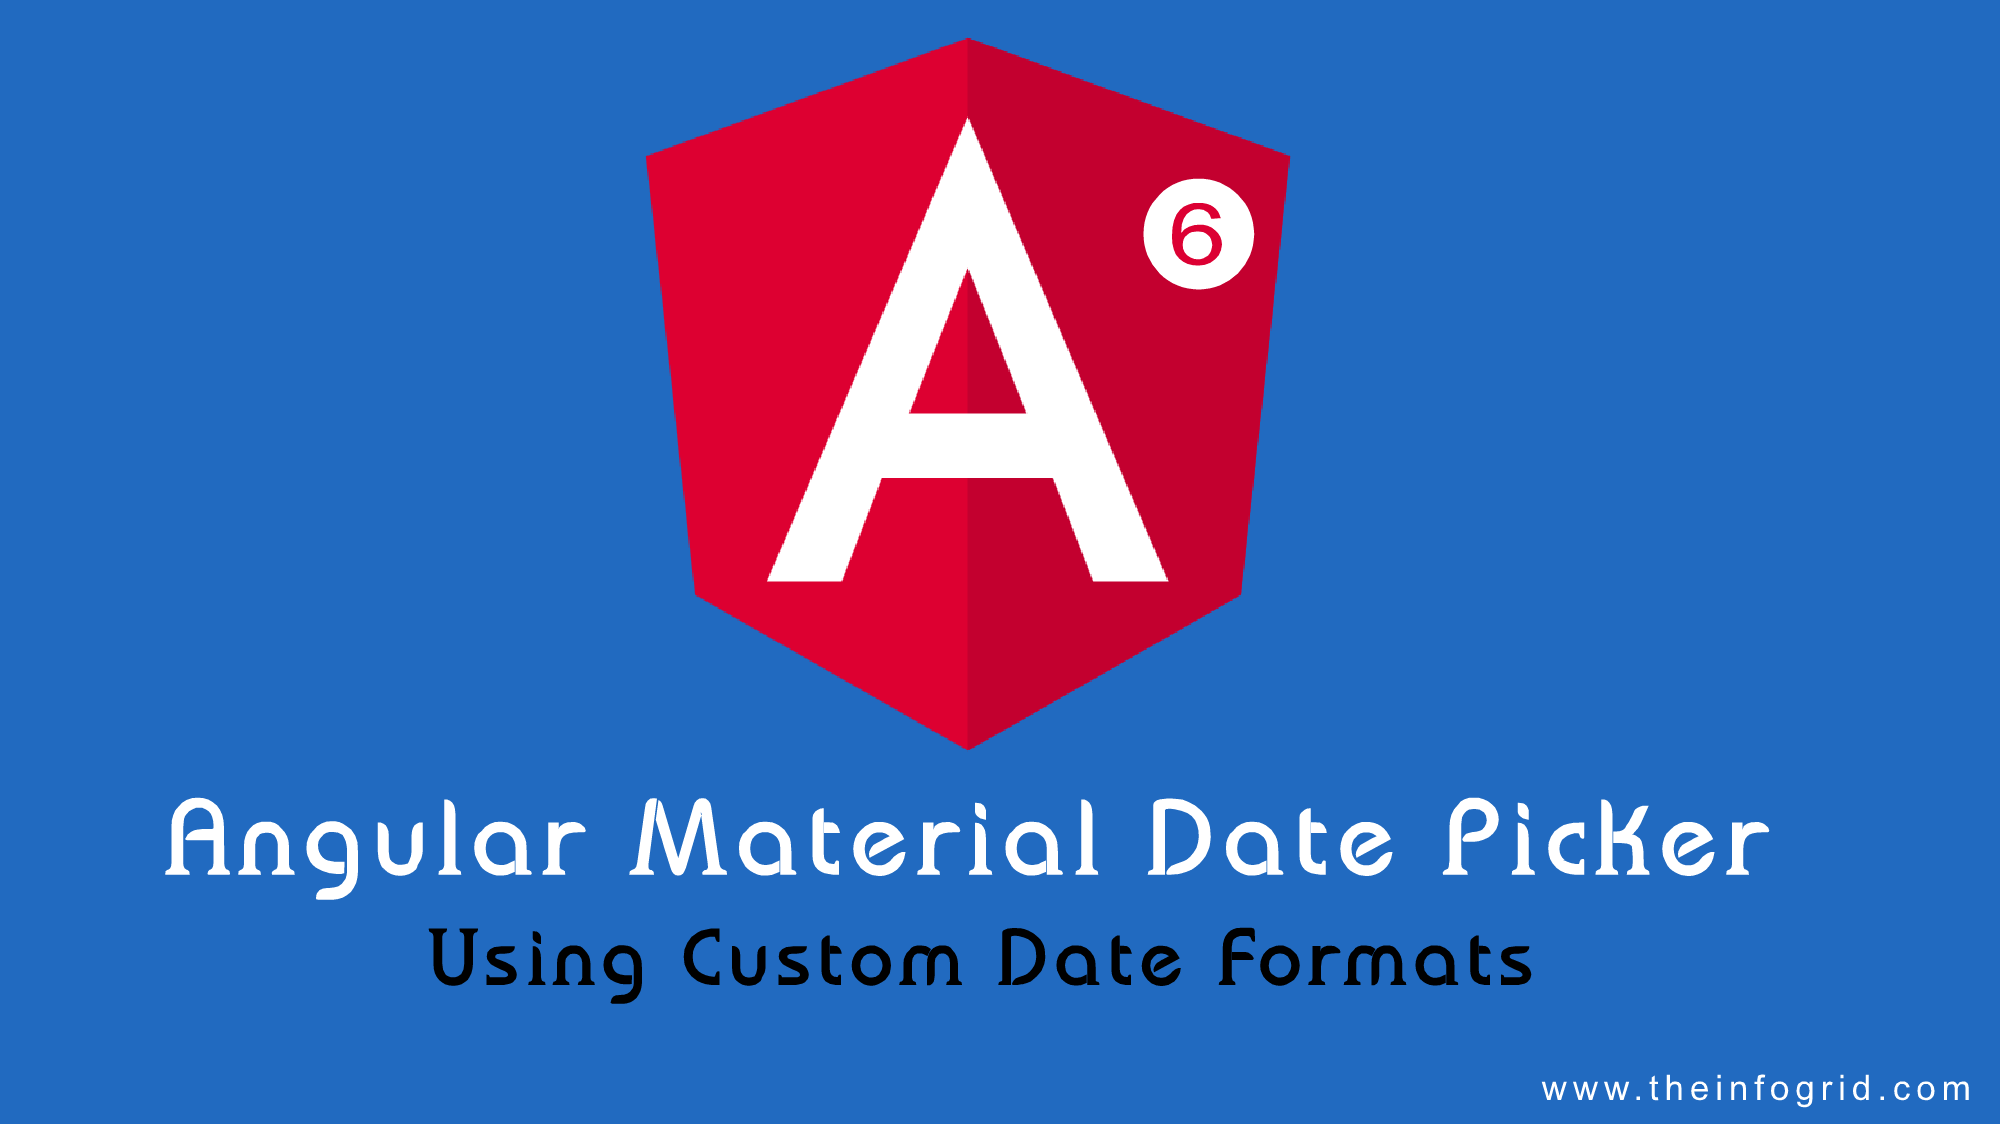 Using custom date formats for Angular Material Date Picker